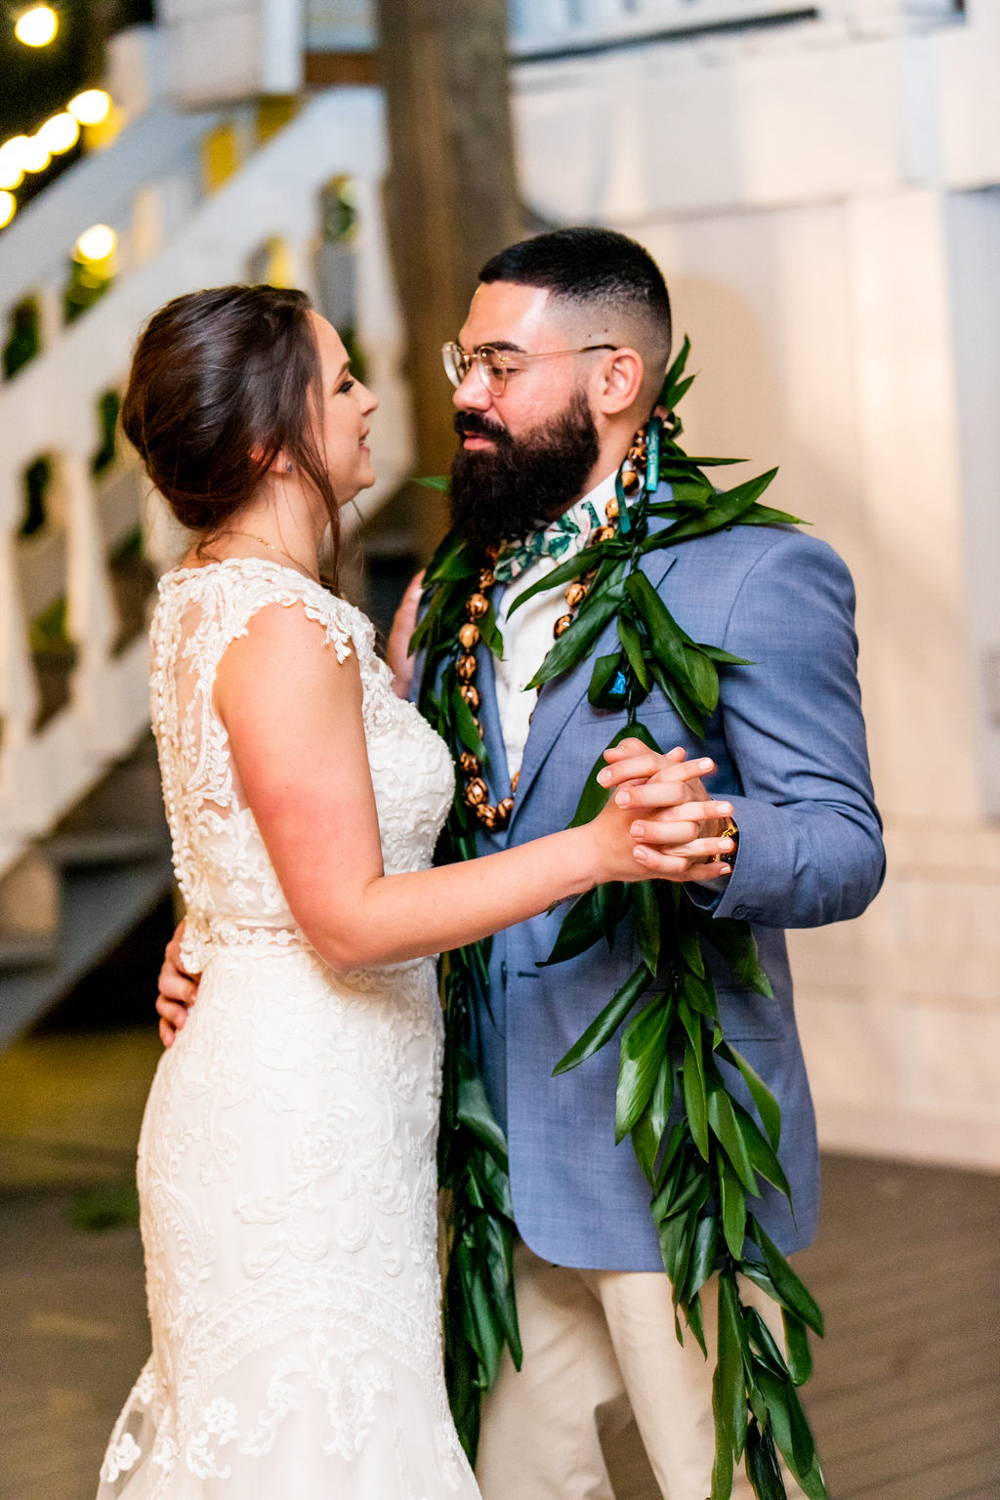 couple's first dance at wedding reception